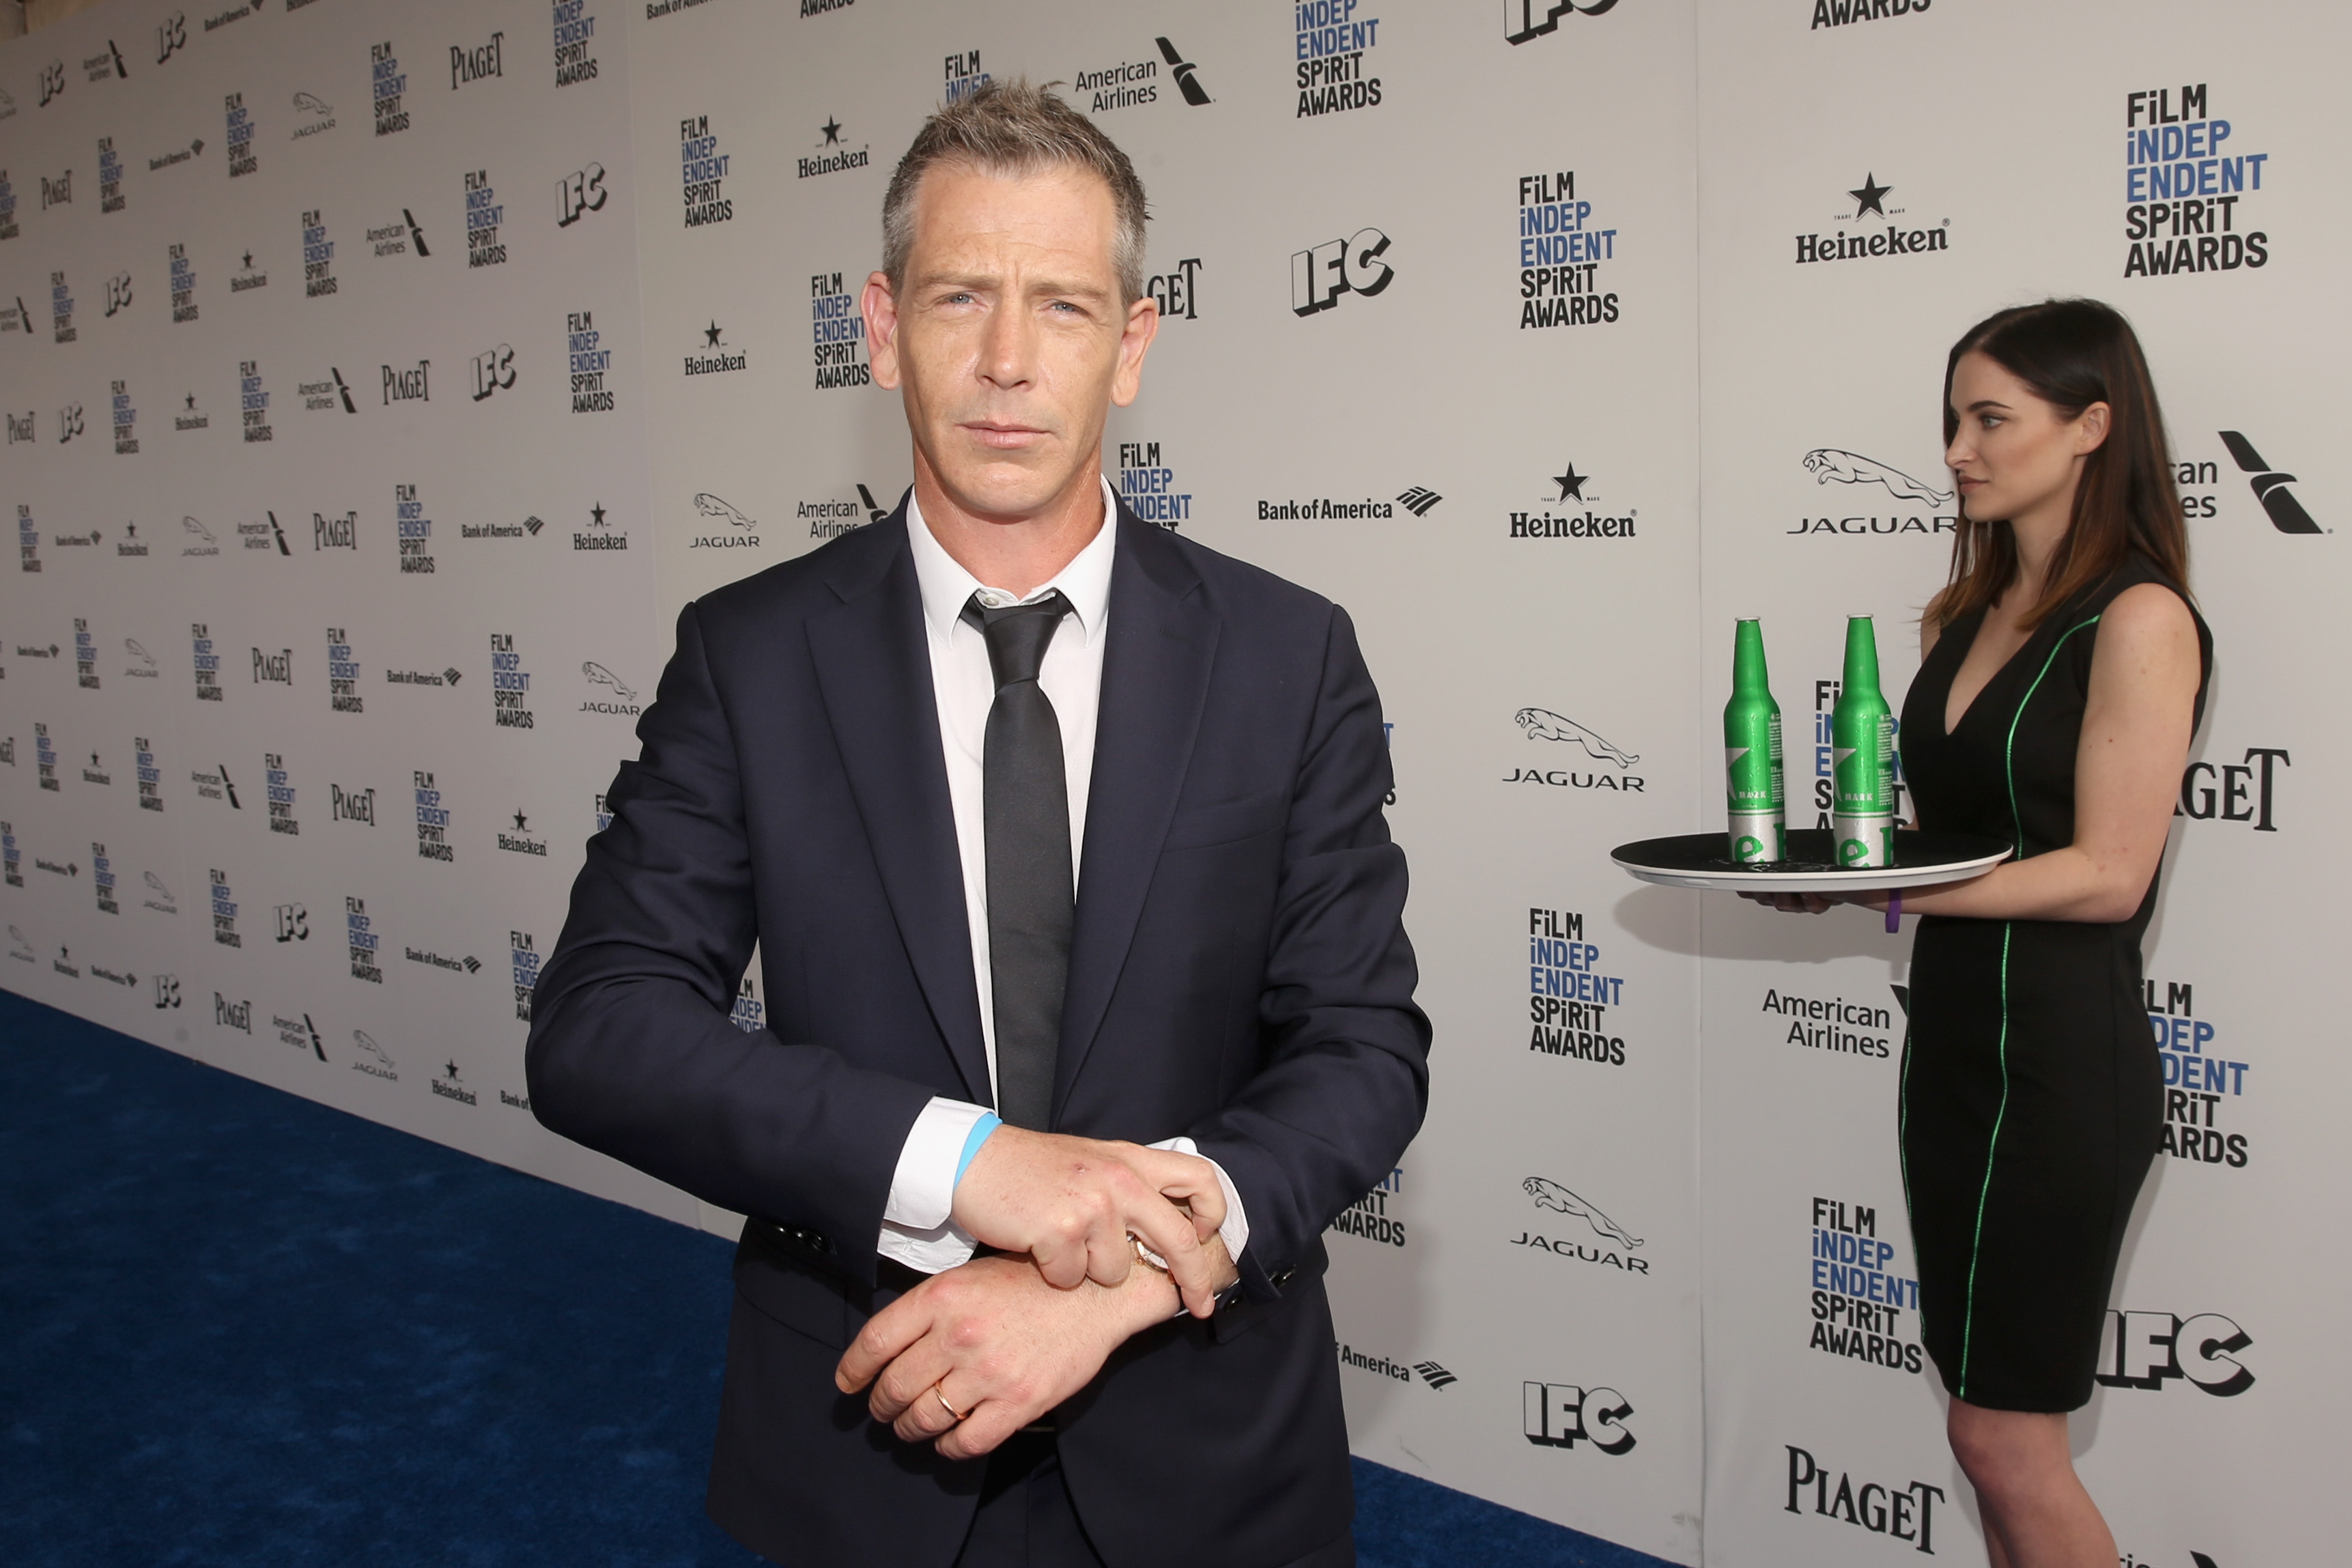 2016 Film Independent Spirit Awards Sponsored By Heineken